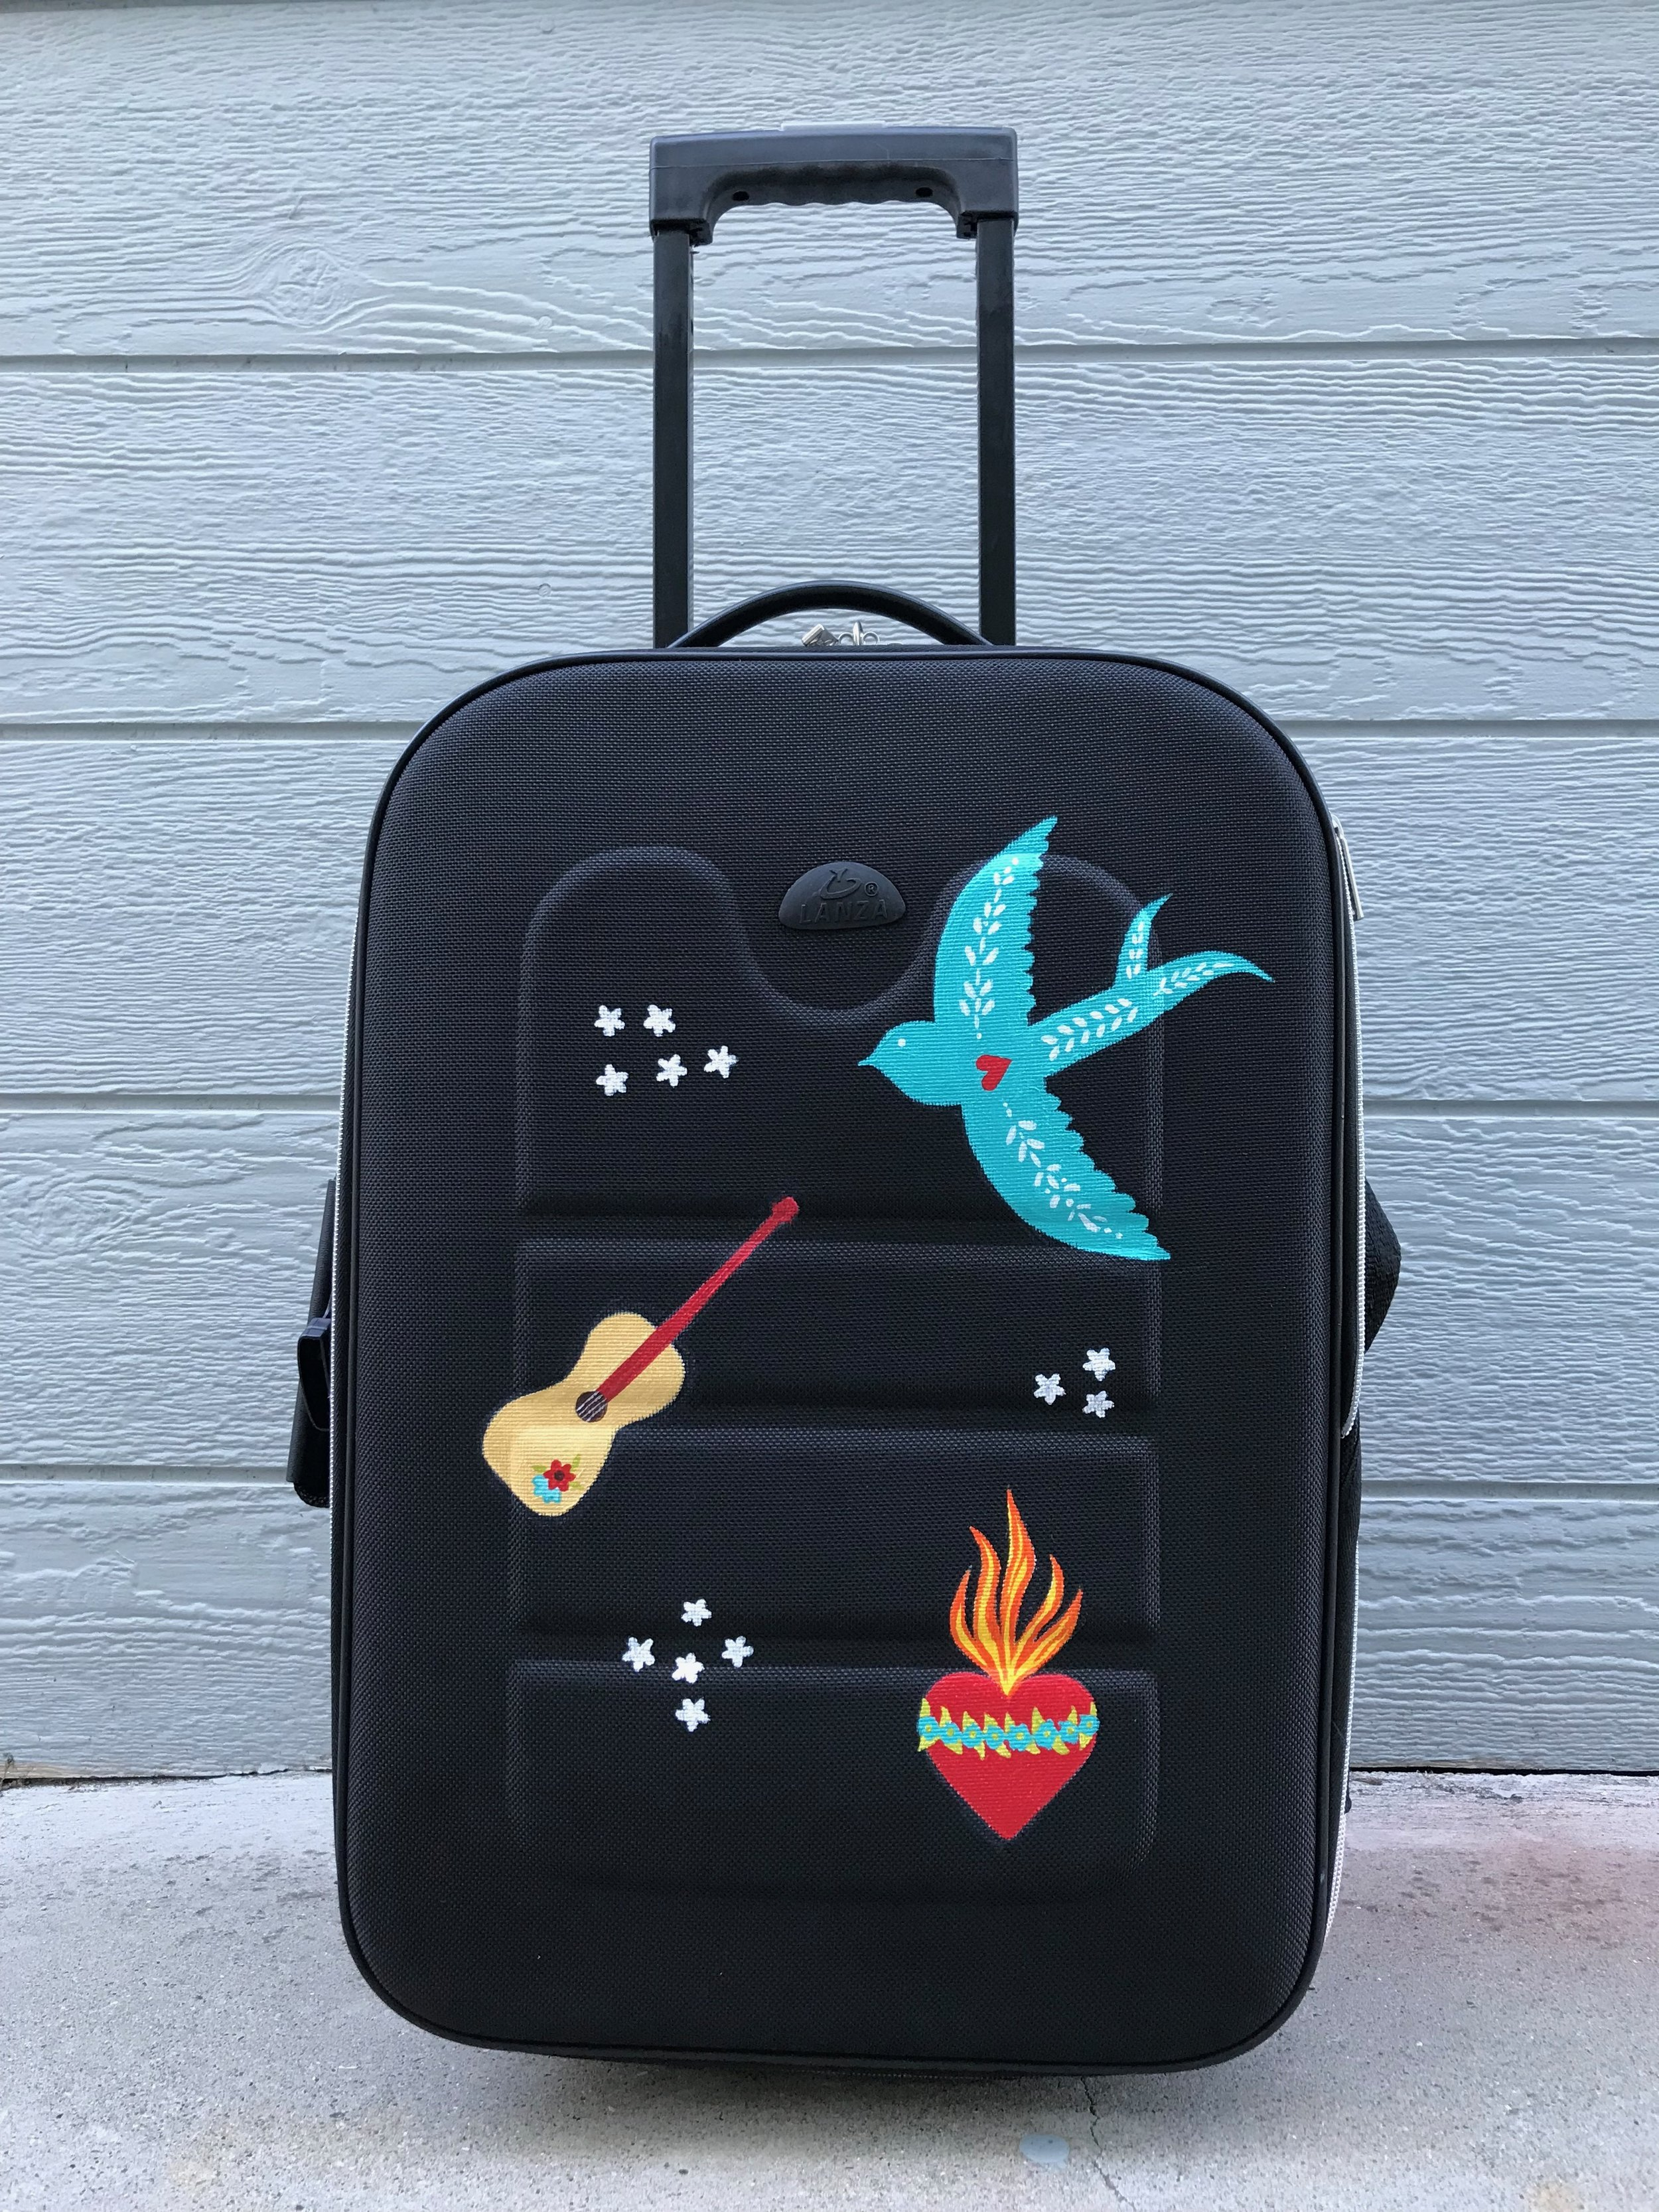 Day 361. Hand-Painted Luggage